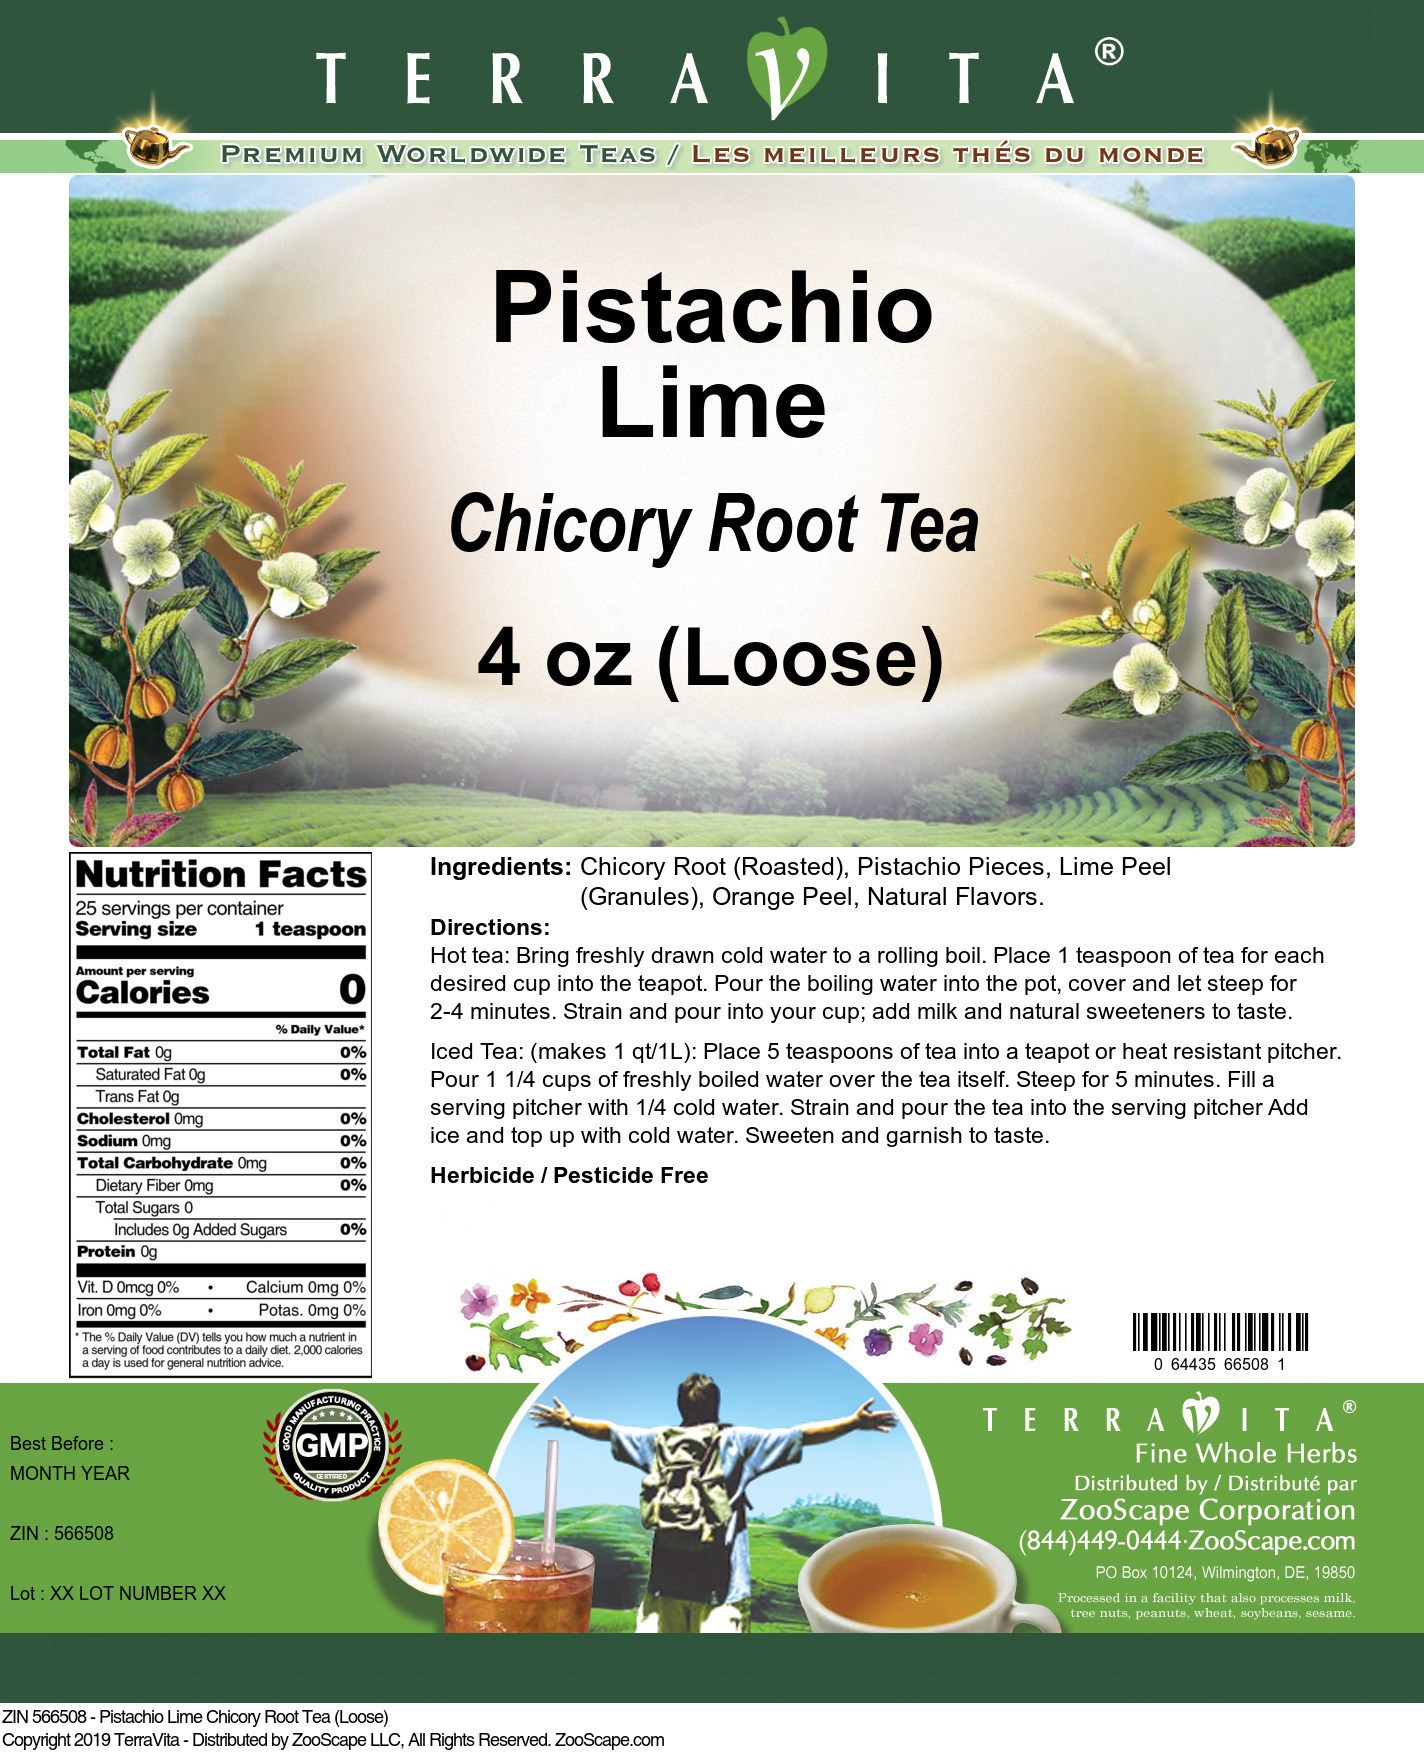 Pistachio Lime Chicory Root